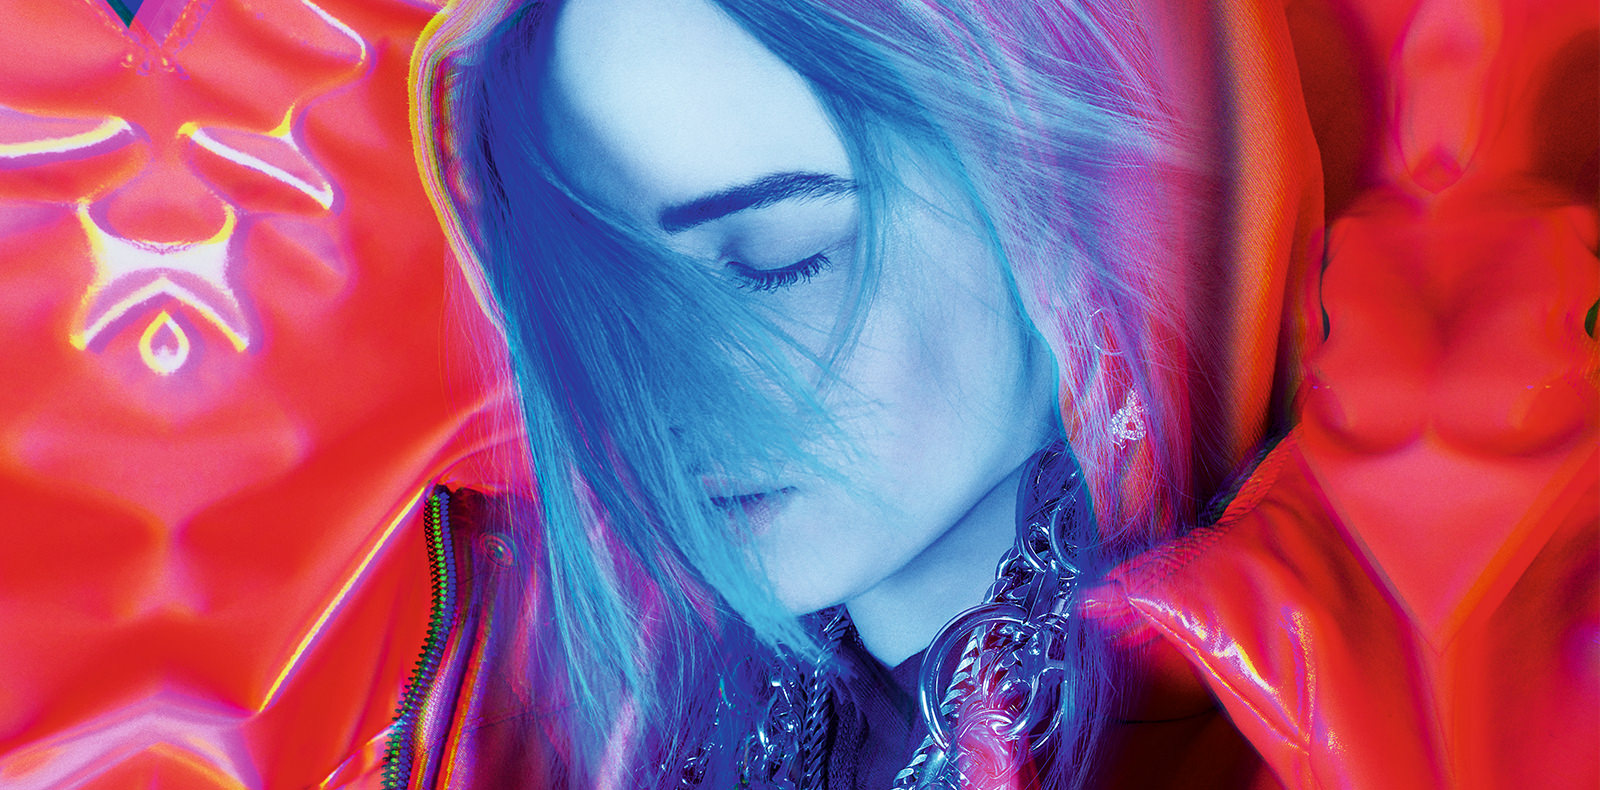 Vidéo: pop star Billie Eilish is a digital creature for Numéro art